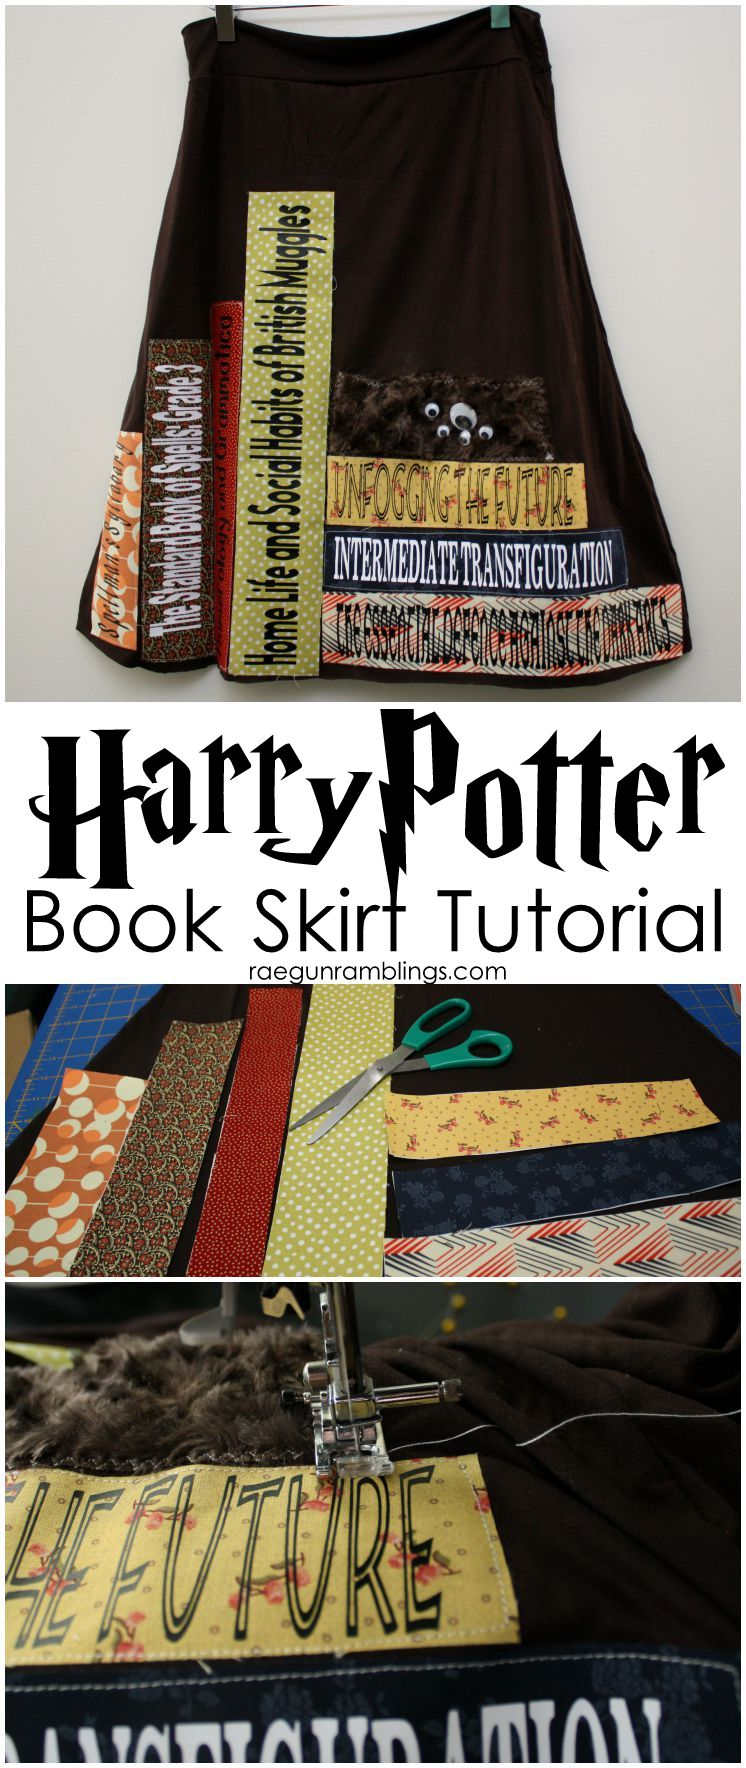 Must make for all Harry Potter fans. Hermione would love this. Hogwarts textbook skirt diy tutorial